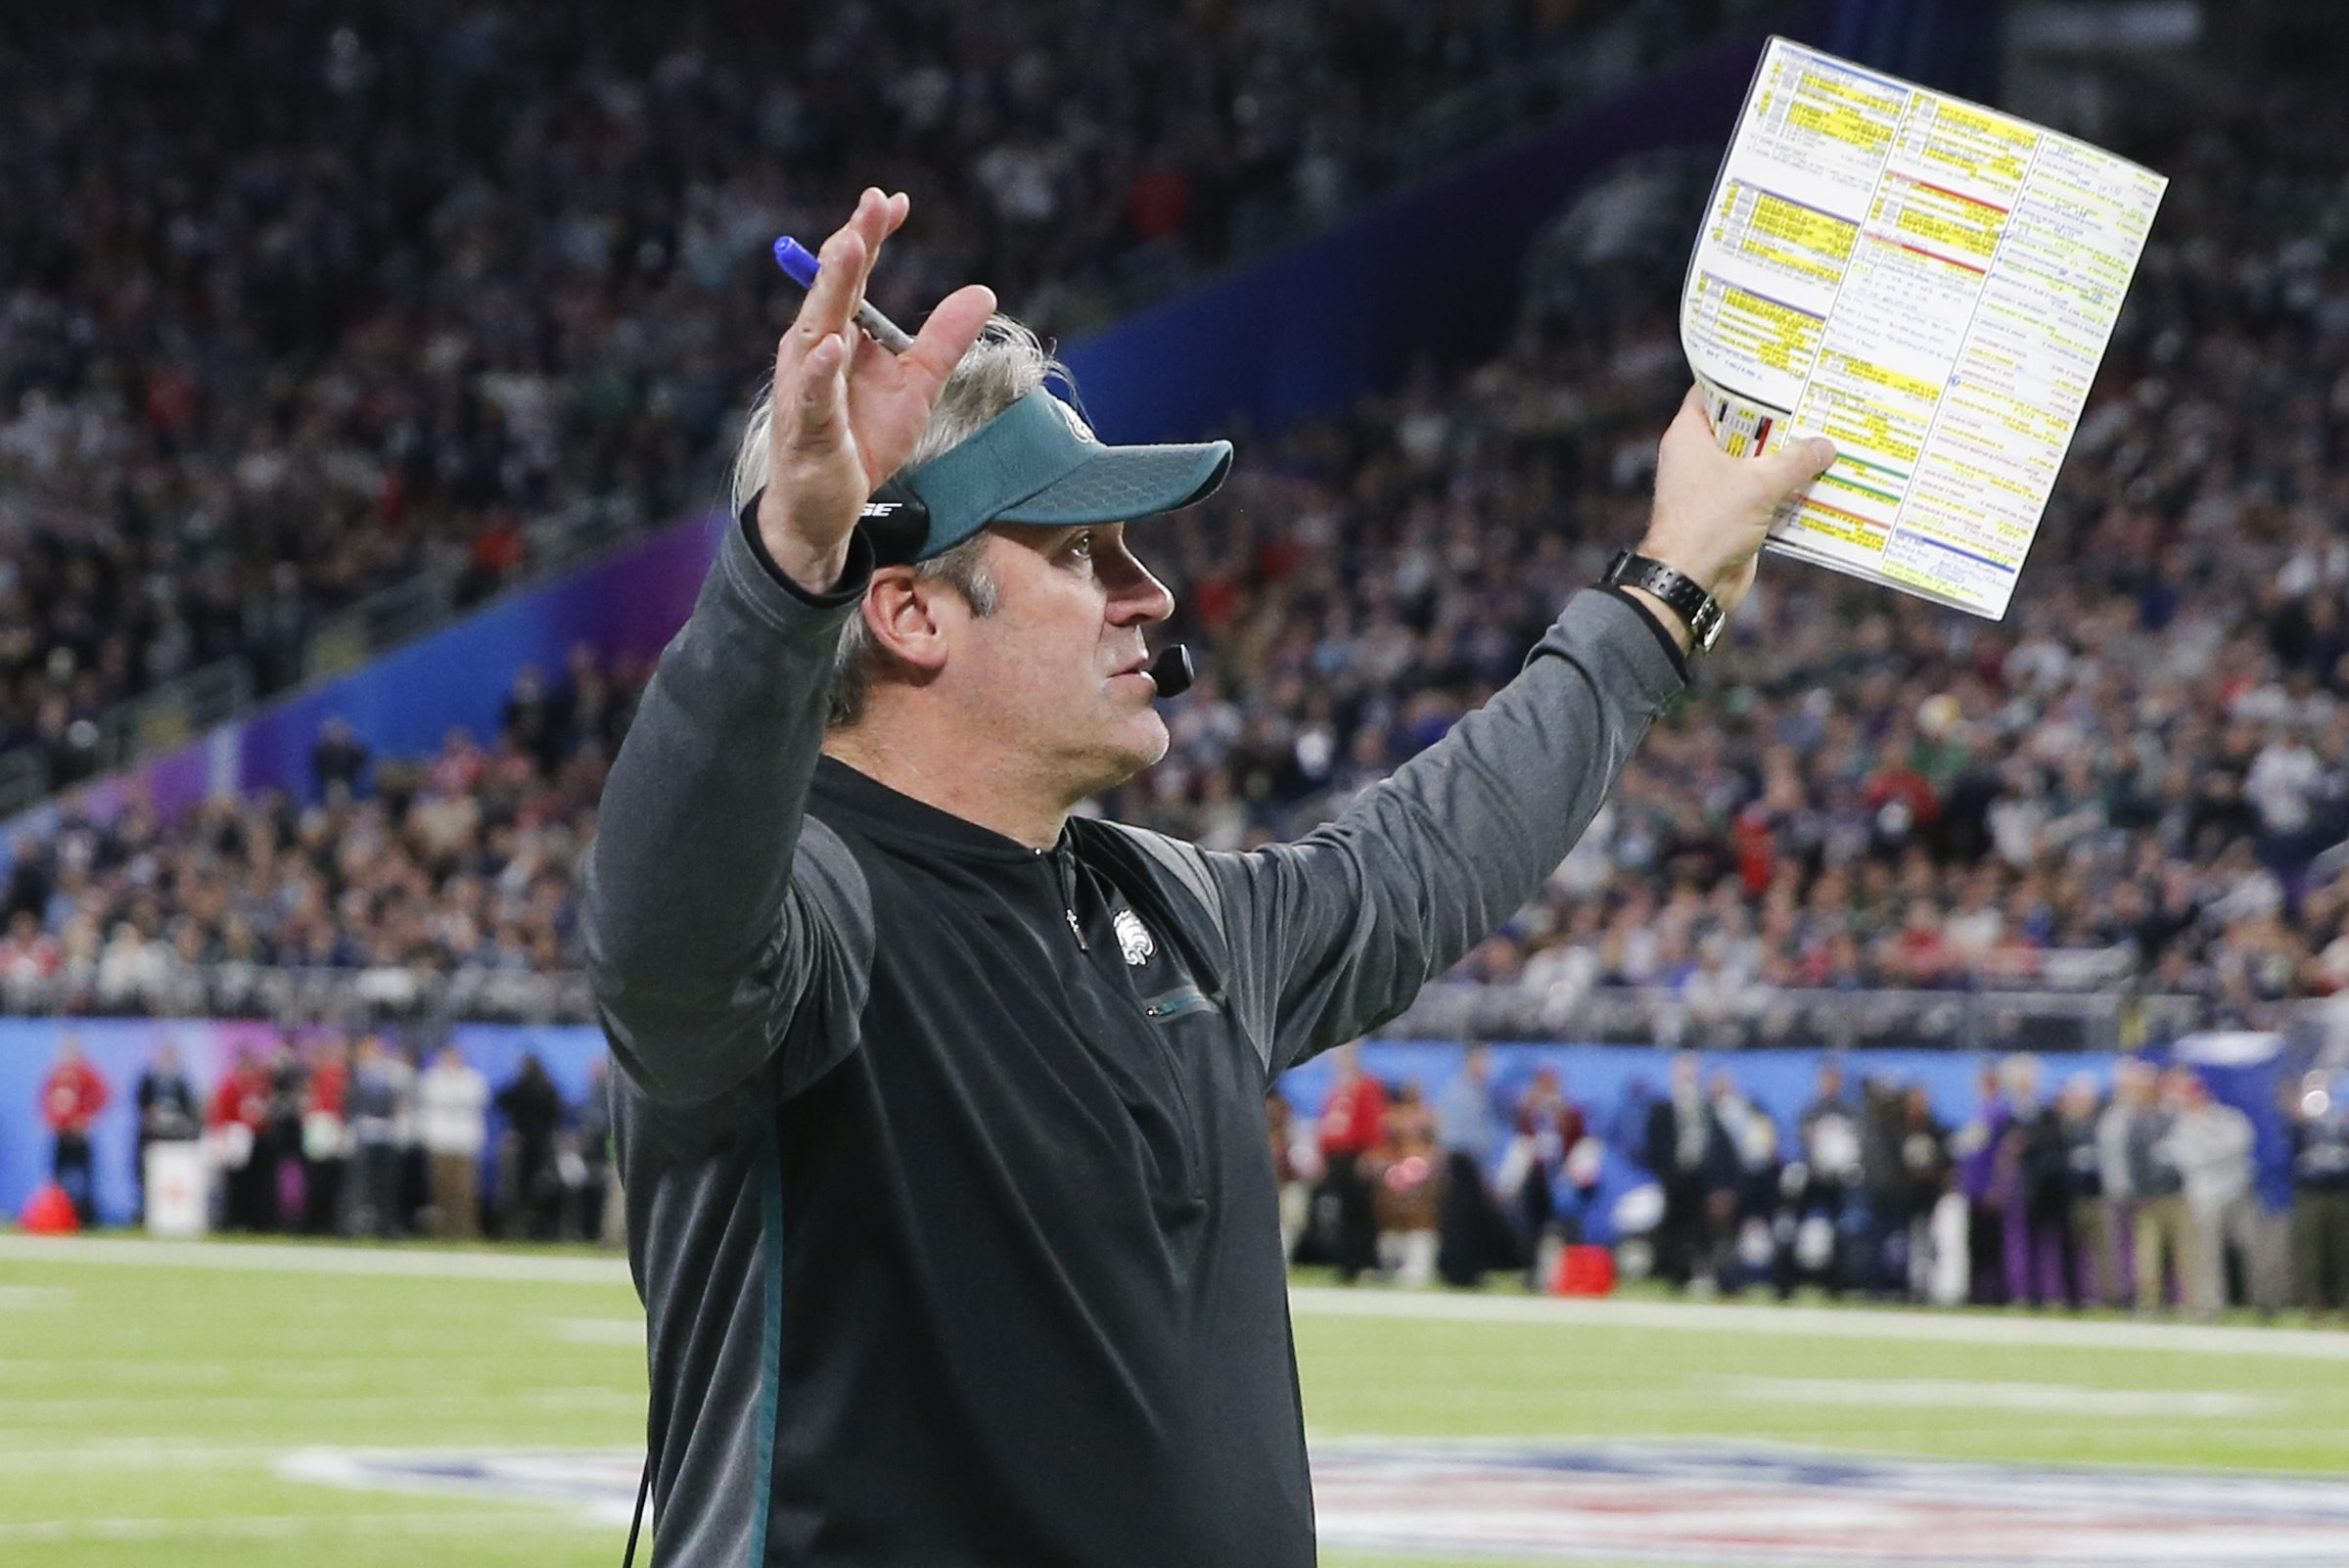 Eagles head coach Doug Pederson raises his arms after New England Patriots kicker Stephen Gostkowski misses a second-quarter field goal in Super Bowl LII on Sunday, February 4, 2018 in Minneapolis.